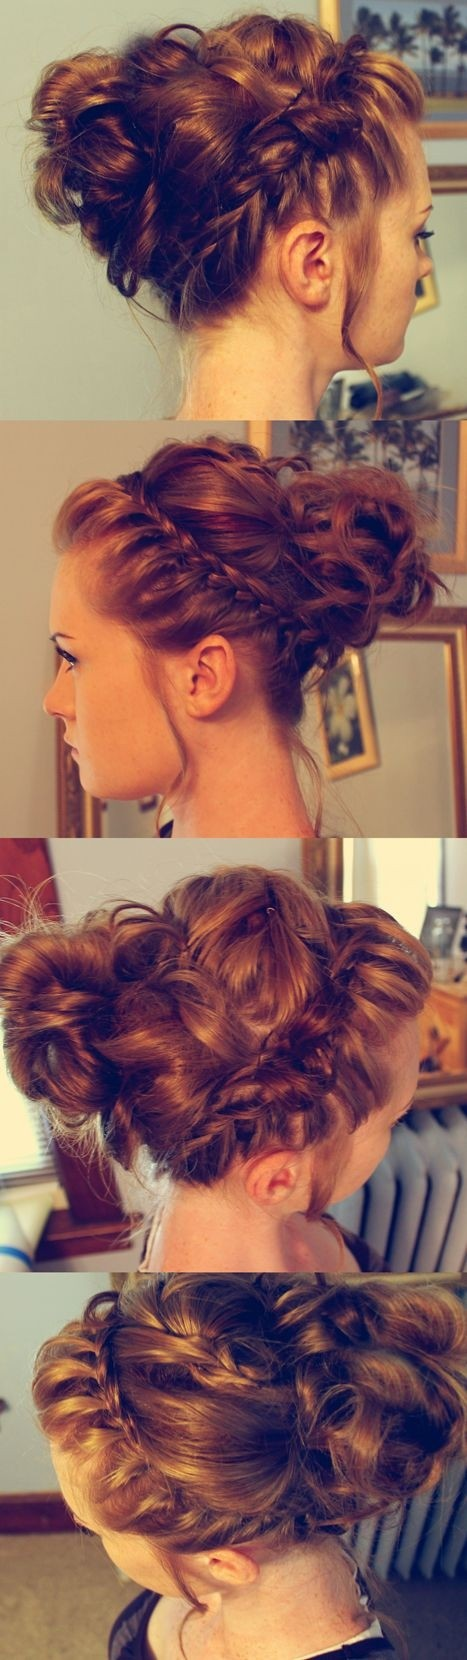 Braided Messy Bun Updo - 2015 Trendy Prom Hairstyles for Long Hair